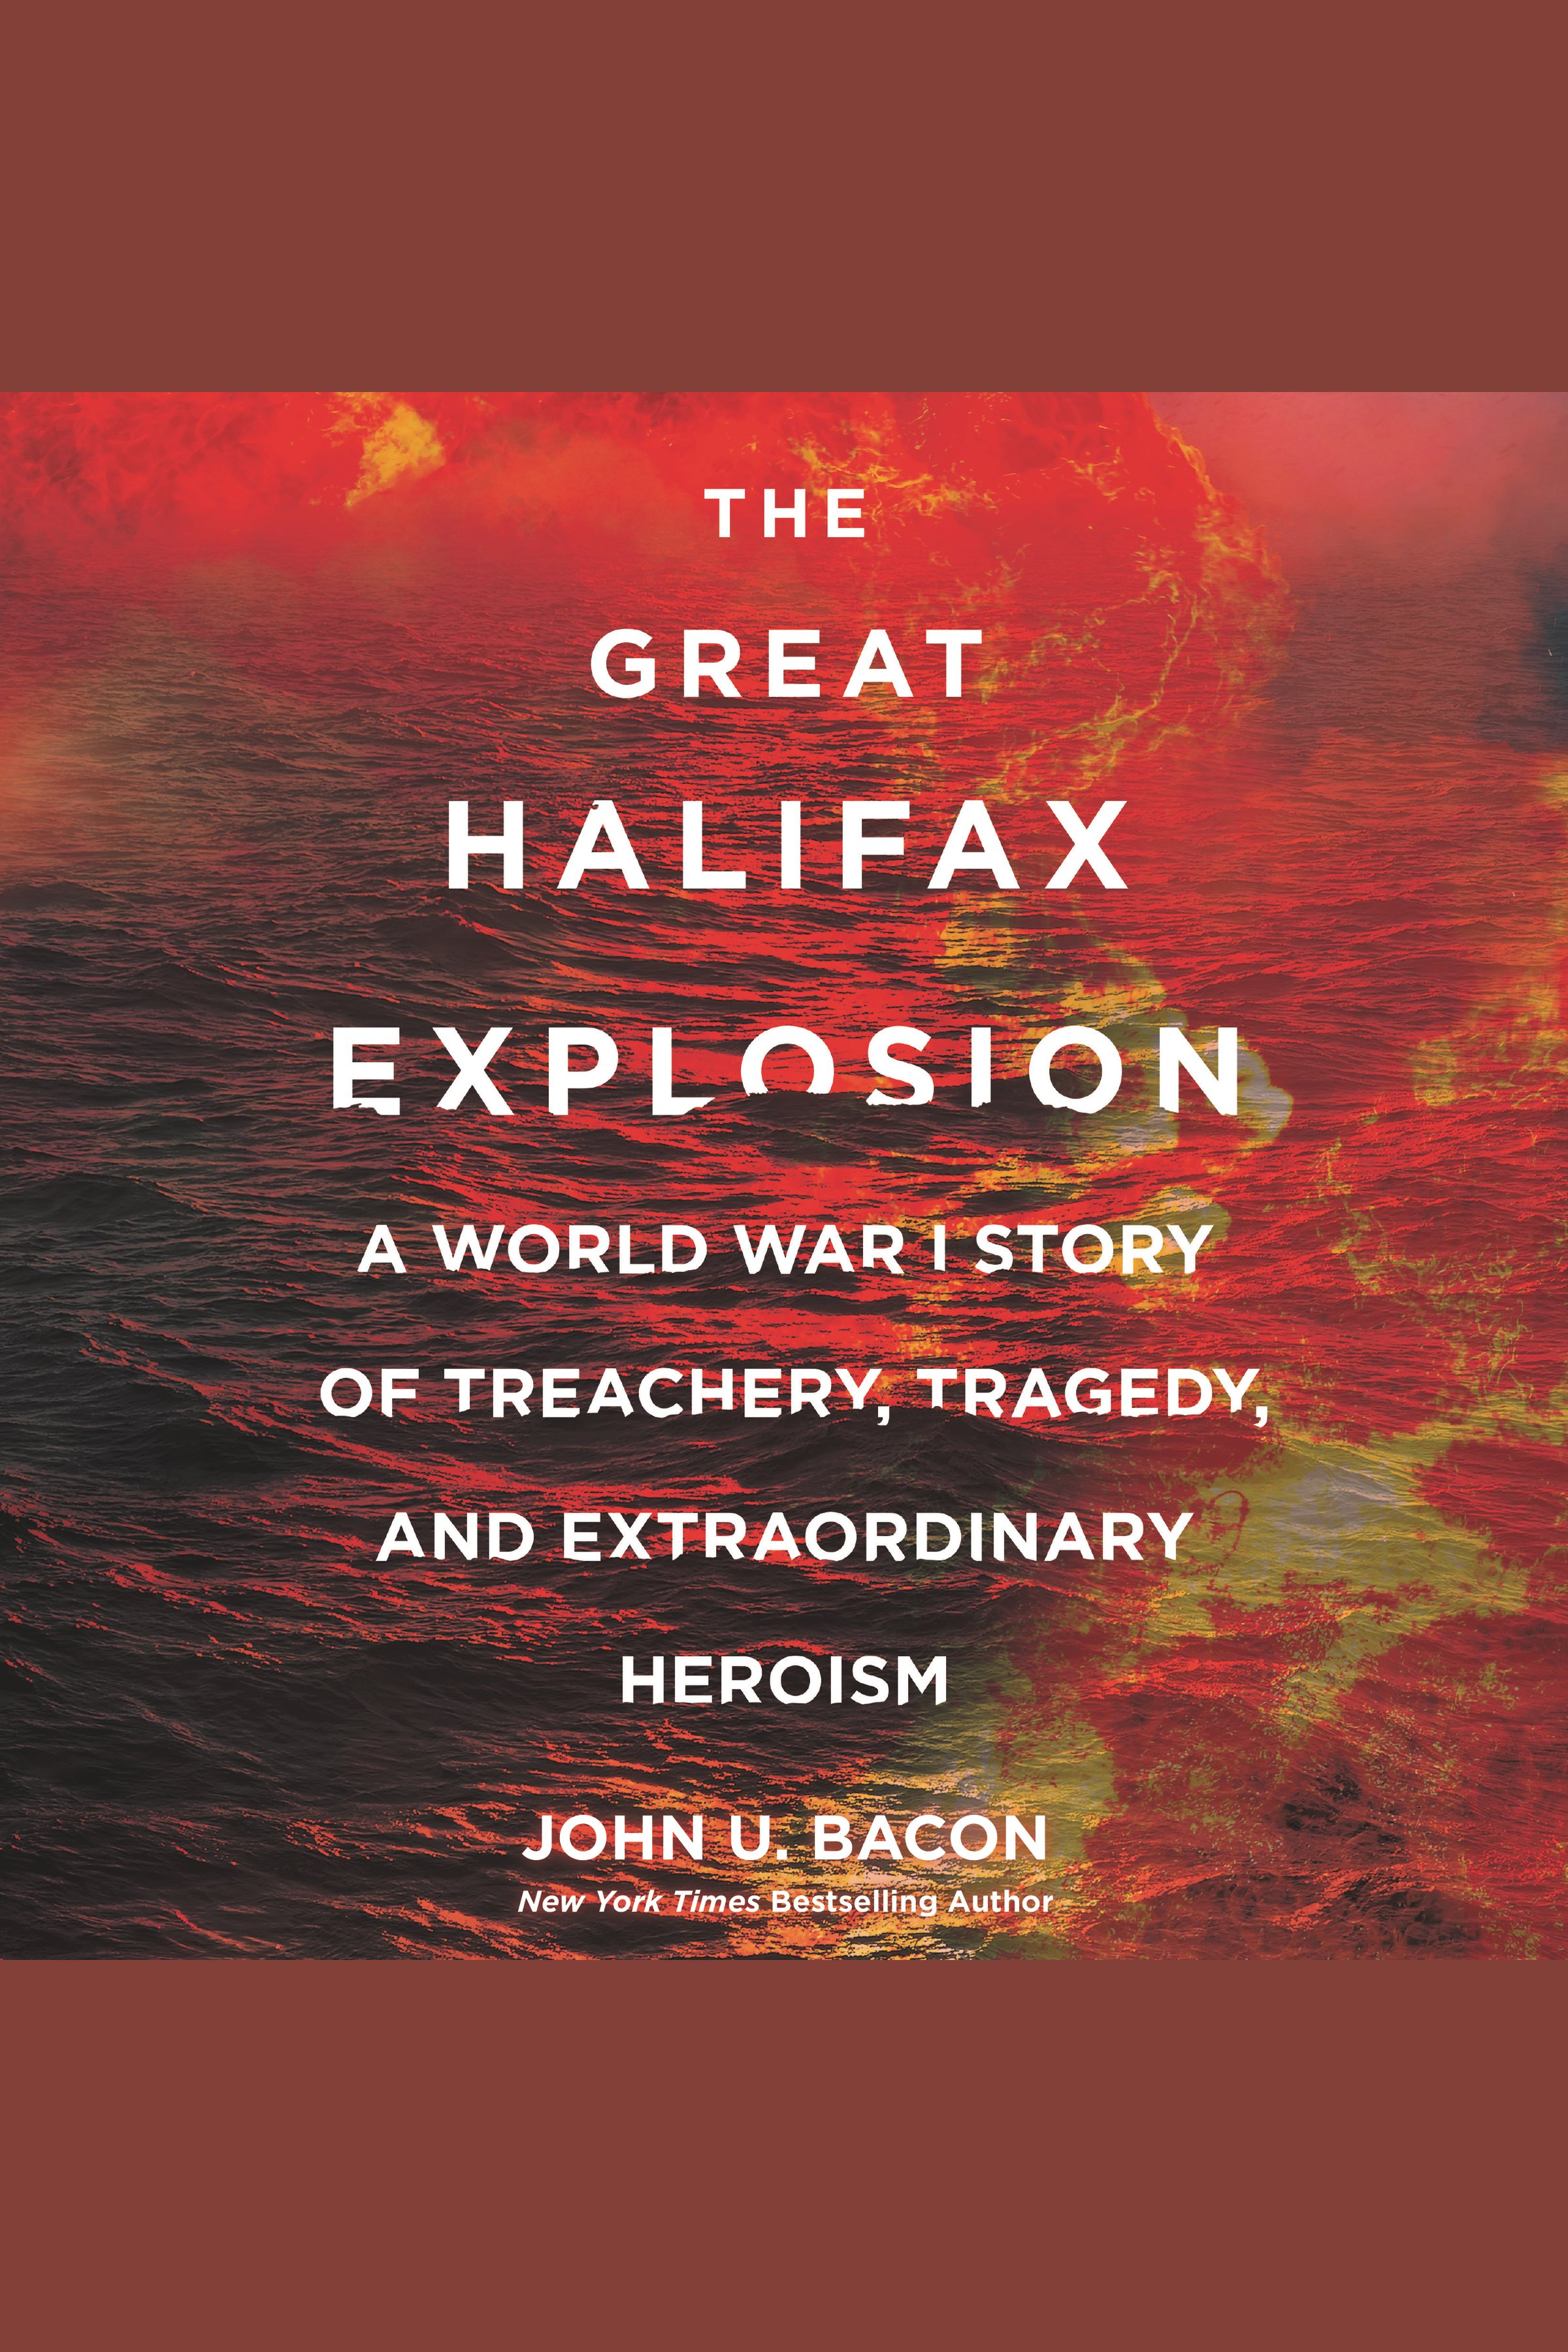 Great Halifax Explosion, The A World War I Story of Treachery, Tragedy, and Extraordinary Heroism